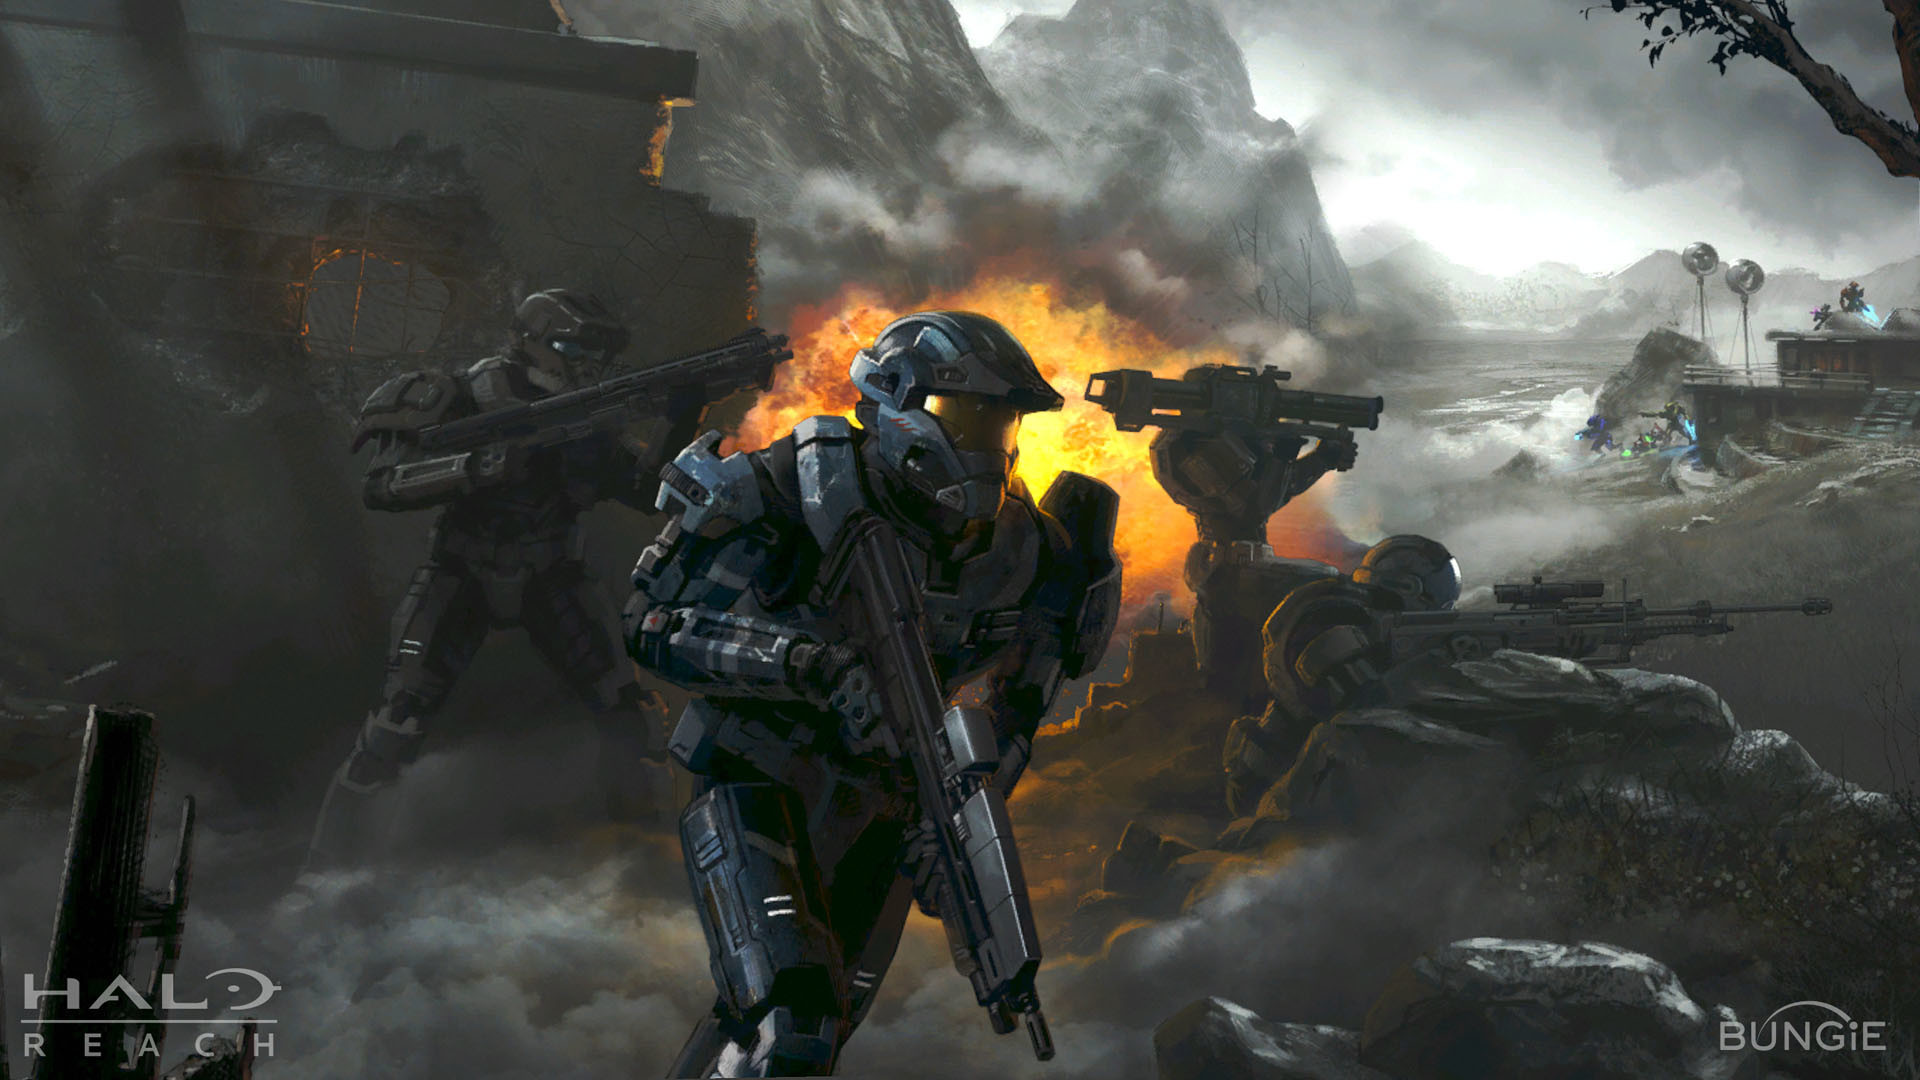 1920x1080 Halo: Reach HD Wallpapers